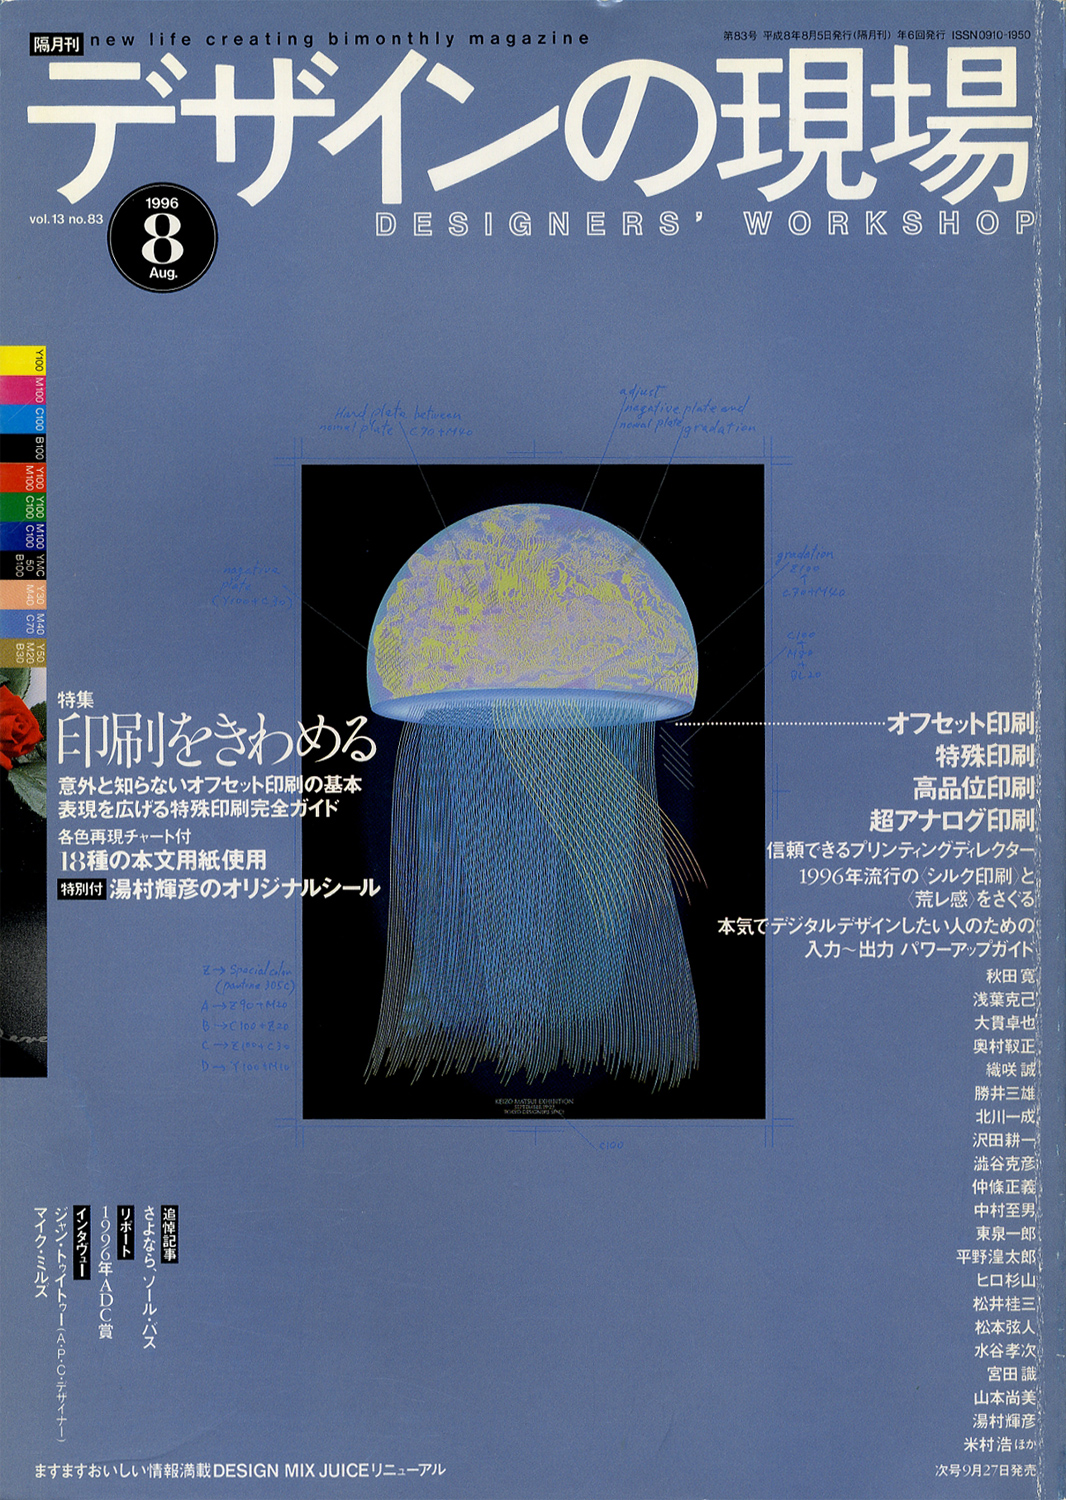 デザインの現場 DESIGNERS' WORKSHOP VOL.13 NO.83[image1]